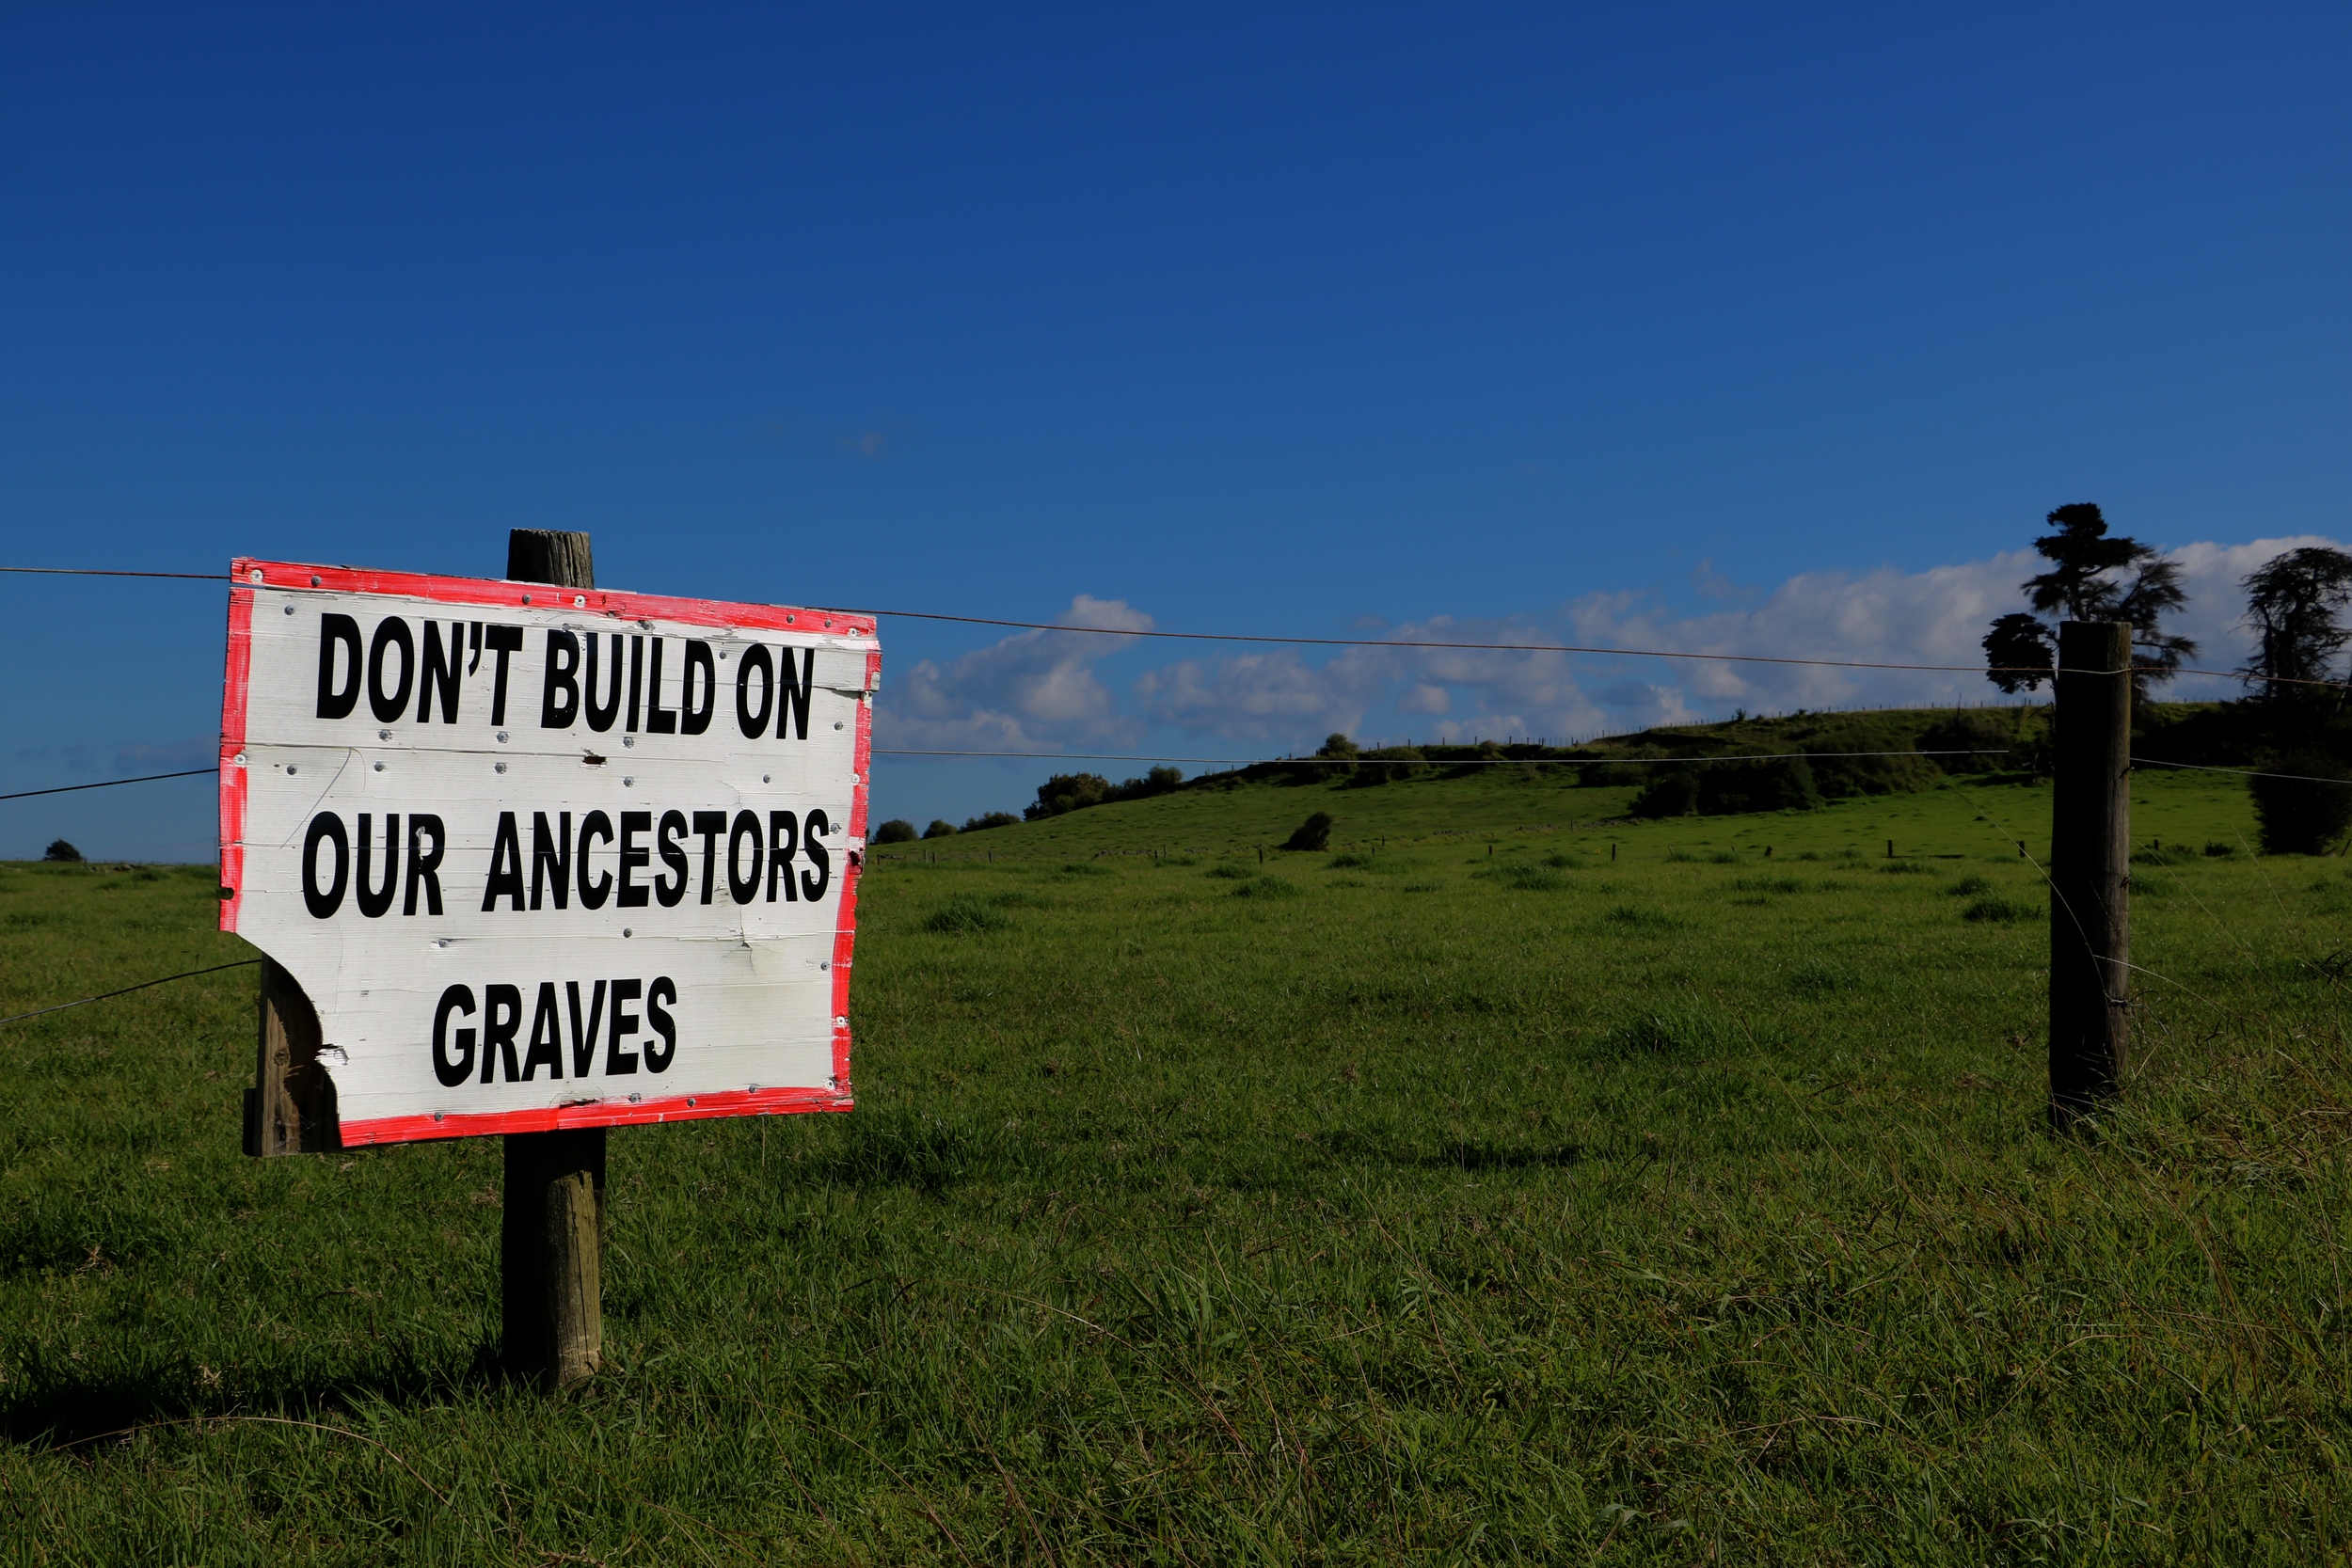 Campaigners are trying to stop a major housing development at Ihumaatao, Mangere from going ahead. The site has cultural significance to Maori.